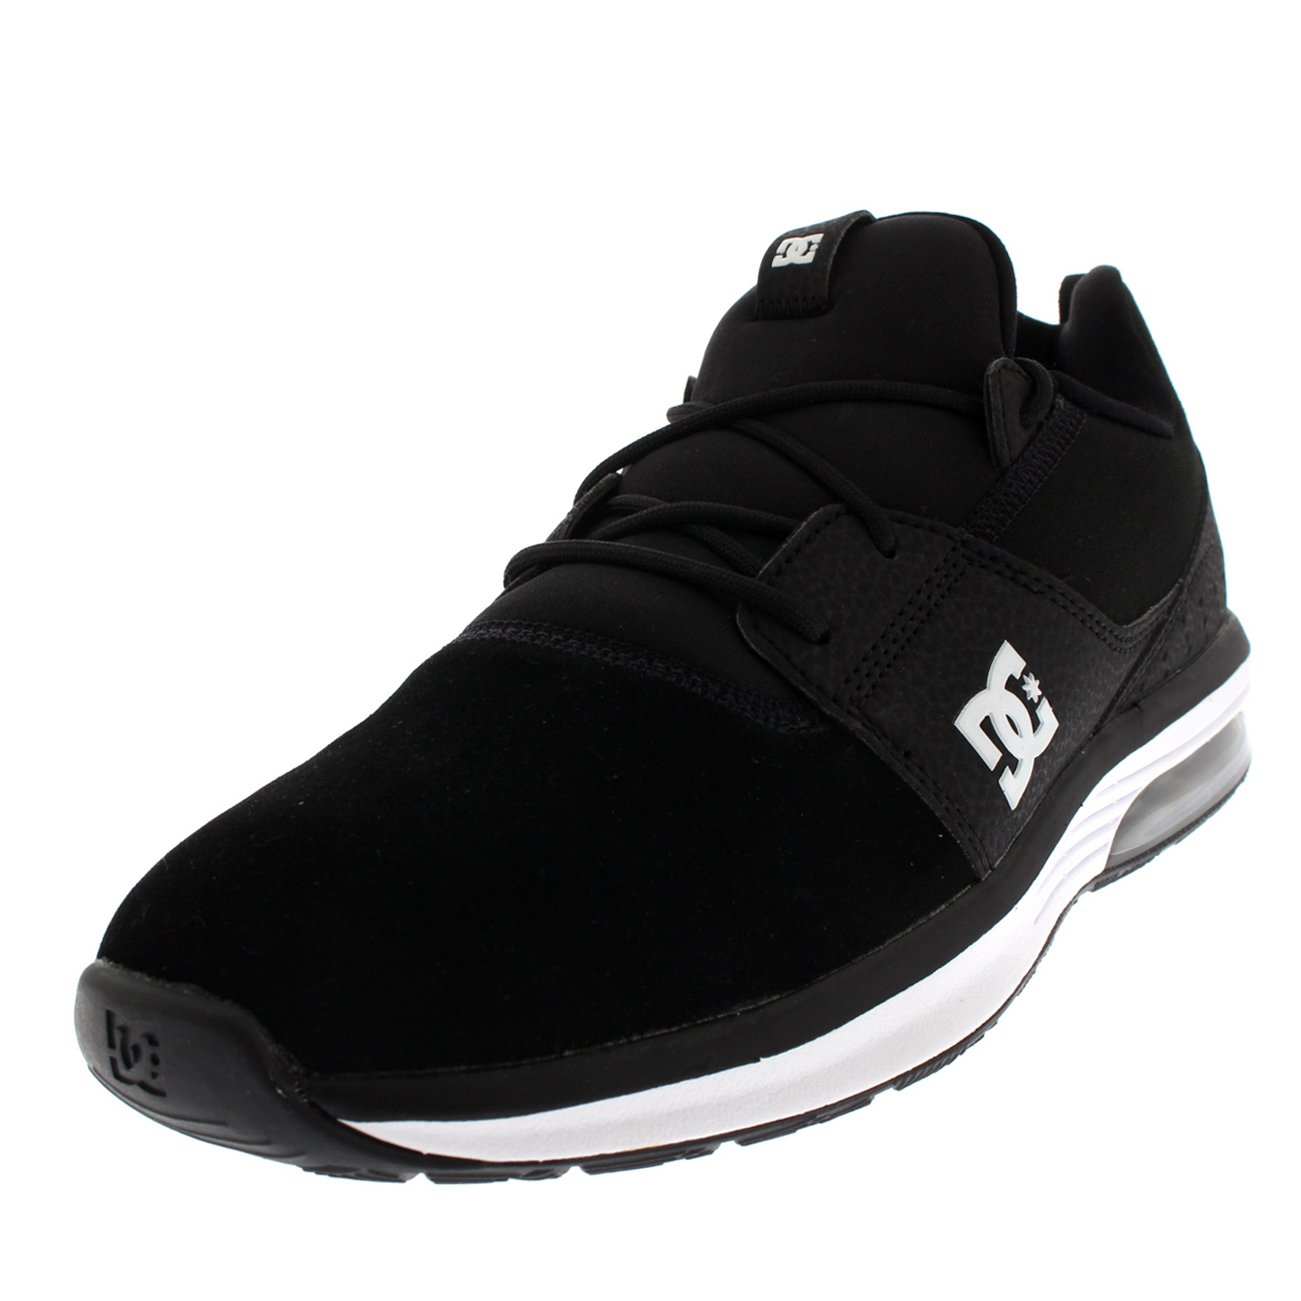 DC Shoes Heathrow IA - Zapatillas para Hombre 8.5 UK|Black